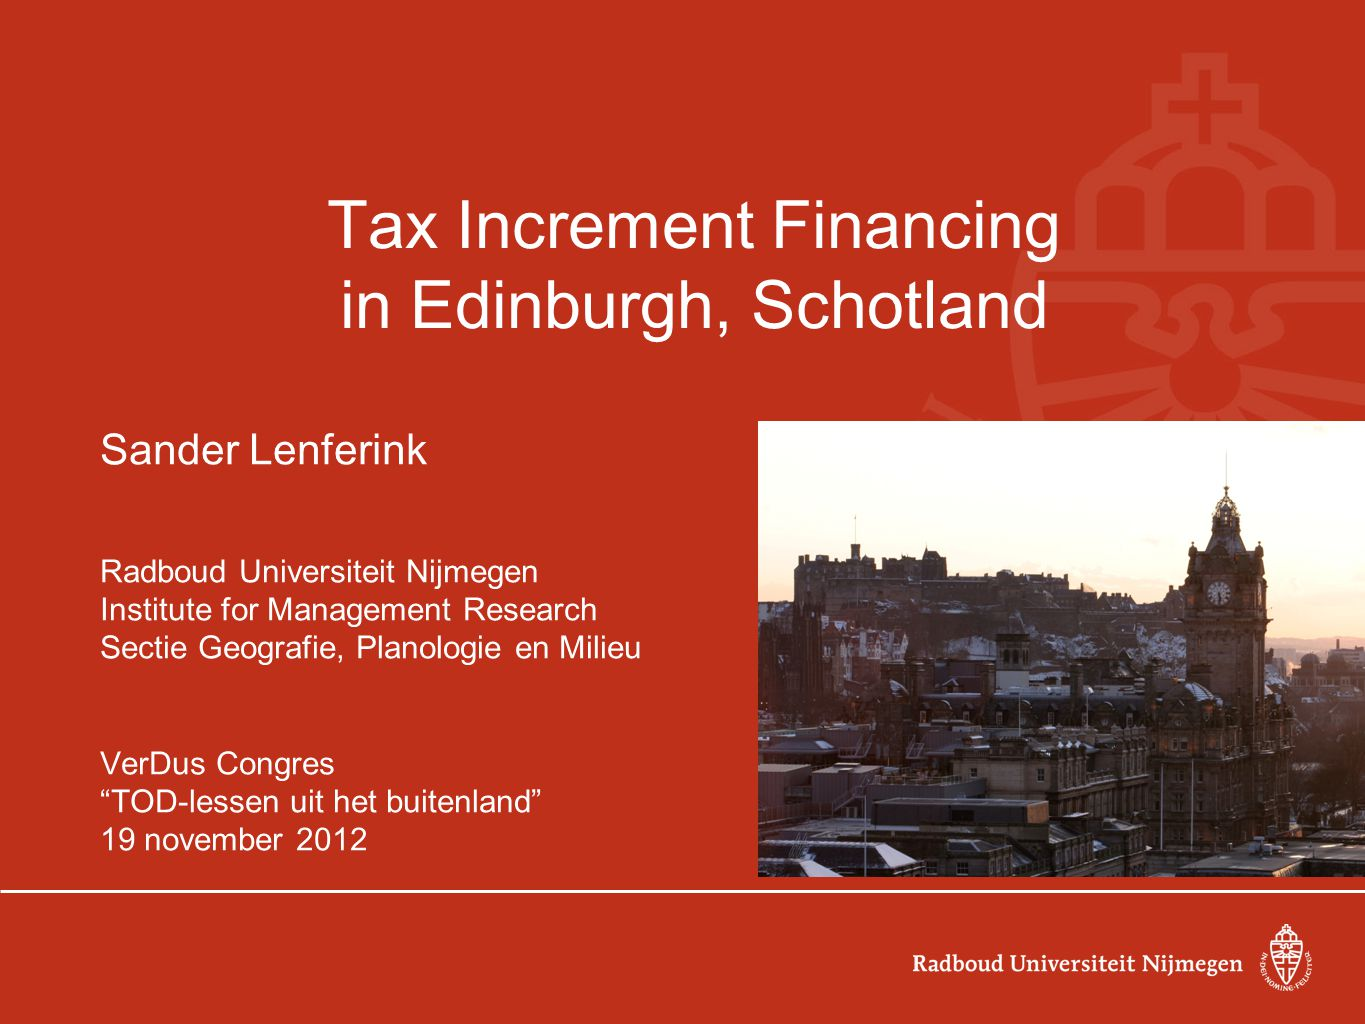 Tax Increment Financing in Edinburgh, Schotland Sander Lenferink Radboud Universiteit Nijmegen Institute for Management Research Sectie Geografie, Planologie en Milieu VerDus Congres TOD-lessen uit het buitenland 19 november 2012